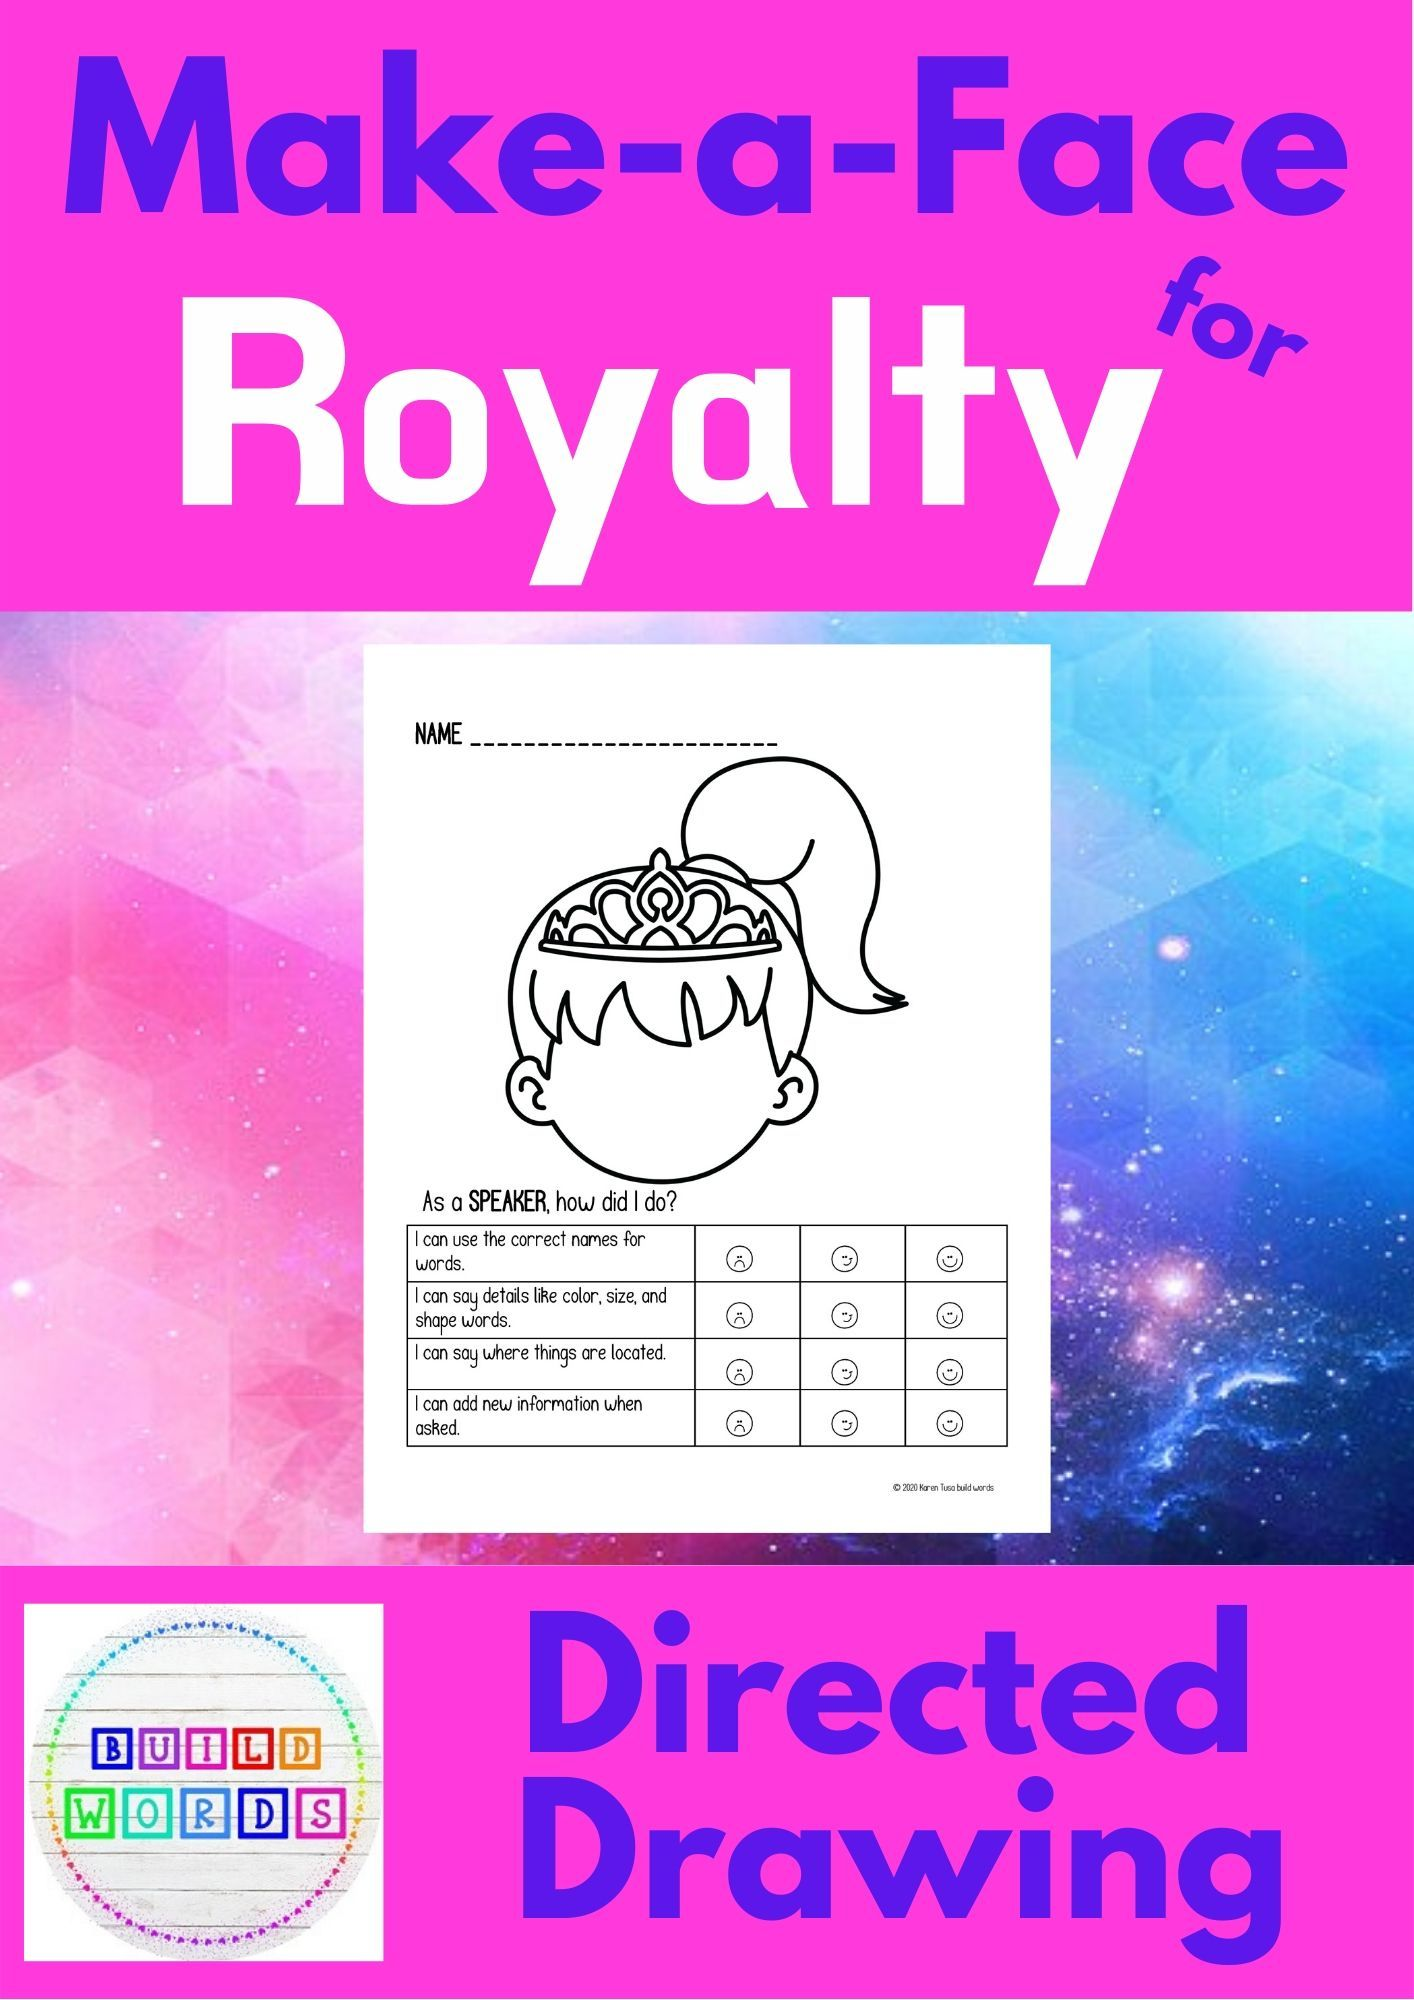 Follow And Give Directions Make A Face For Royalty In